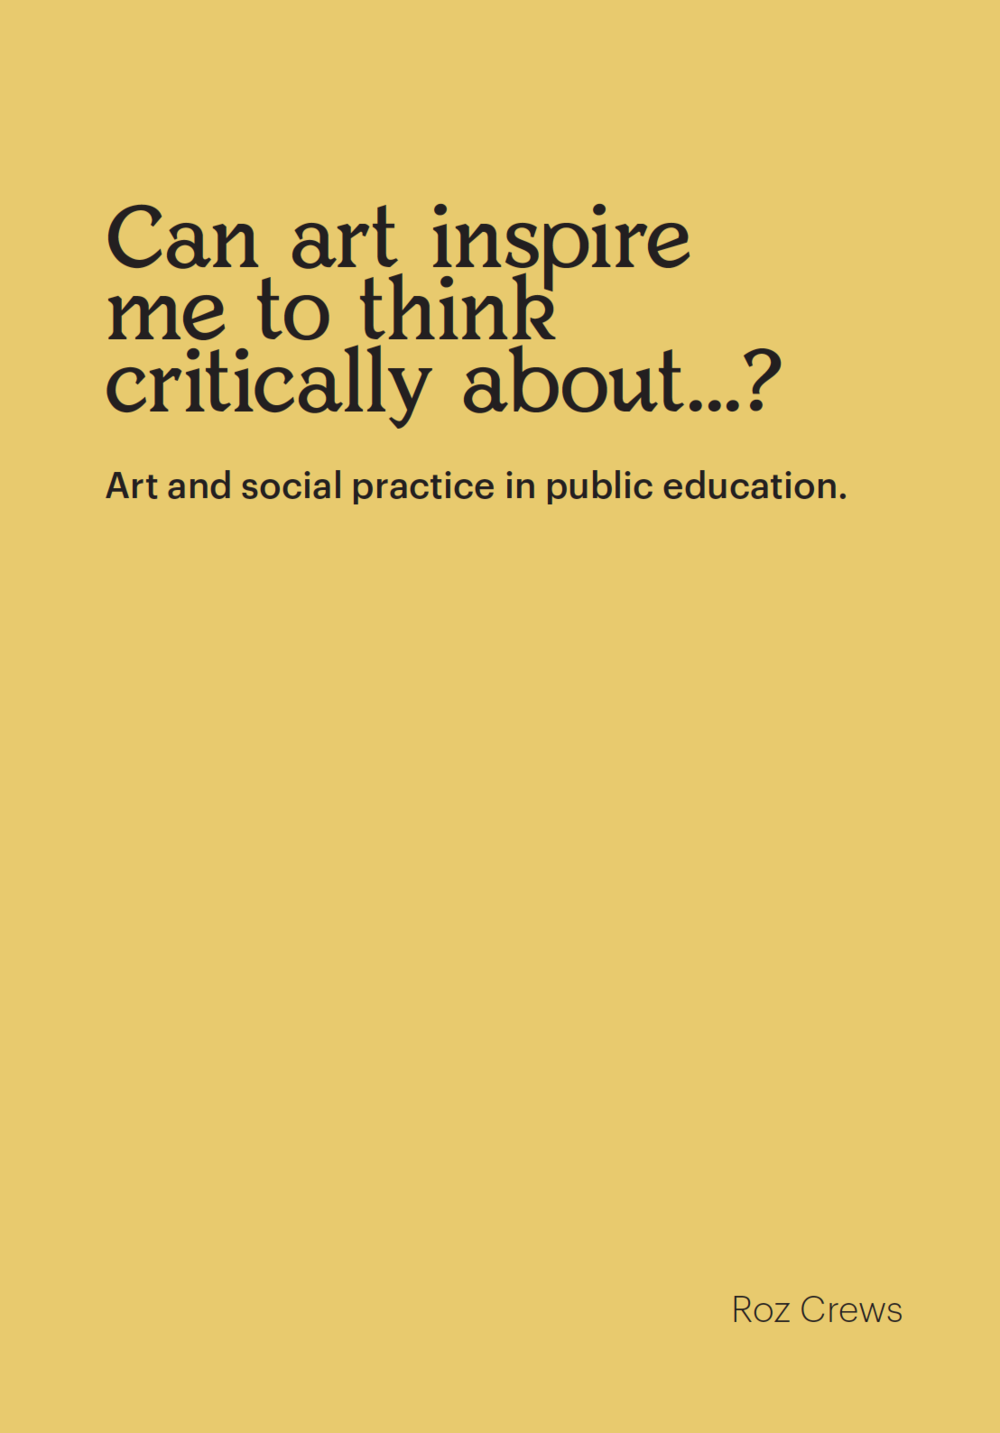 Can art inspire me to think critically about...? Art and social practice in public education , Edited by Roz Crews with various contributors and designed by James Casey, published by Sunday Painter Press, May 2017.   $30 (available - all proceeds go to a scholarship for PSU students to get free passes to the museum)     This book is the product of Roz Crews' three-year residency in the Housing and Residence Life department of Portland State University. It includes an interview with the students and director of the Art & Social Practice MFA program at PSU, ten essays by the first ever winners of the   Distinguished Socially-Engaged Educators of the Region   award, a collection of assignments Roz wrote for activities in the Portland Art Museum, and work by students in the First-Year Experience program at Portland State University.